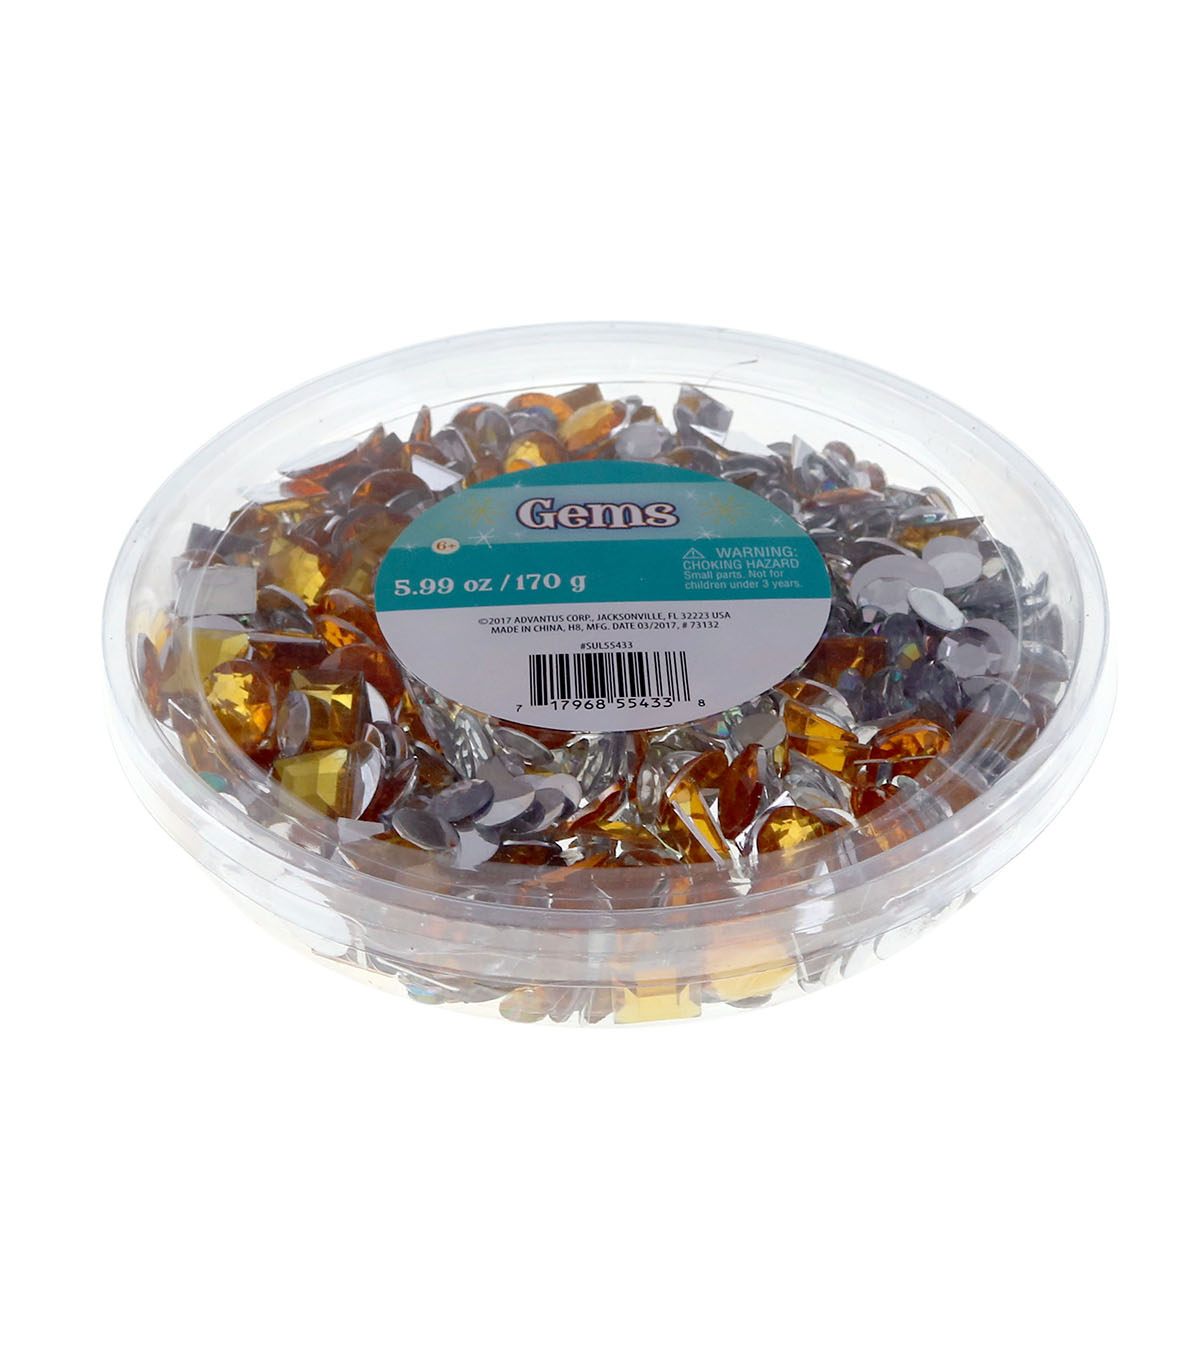 Gem Tub Round Square Gold Crystal